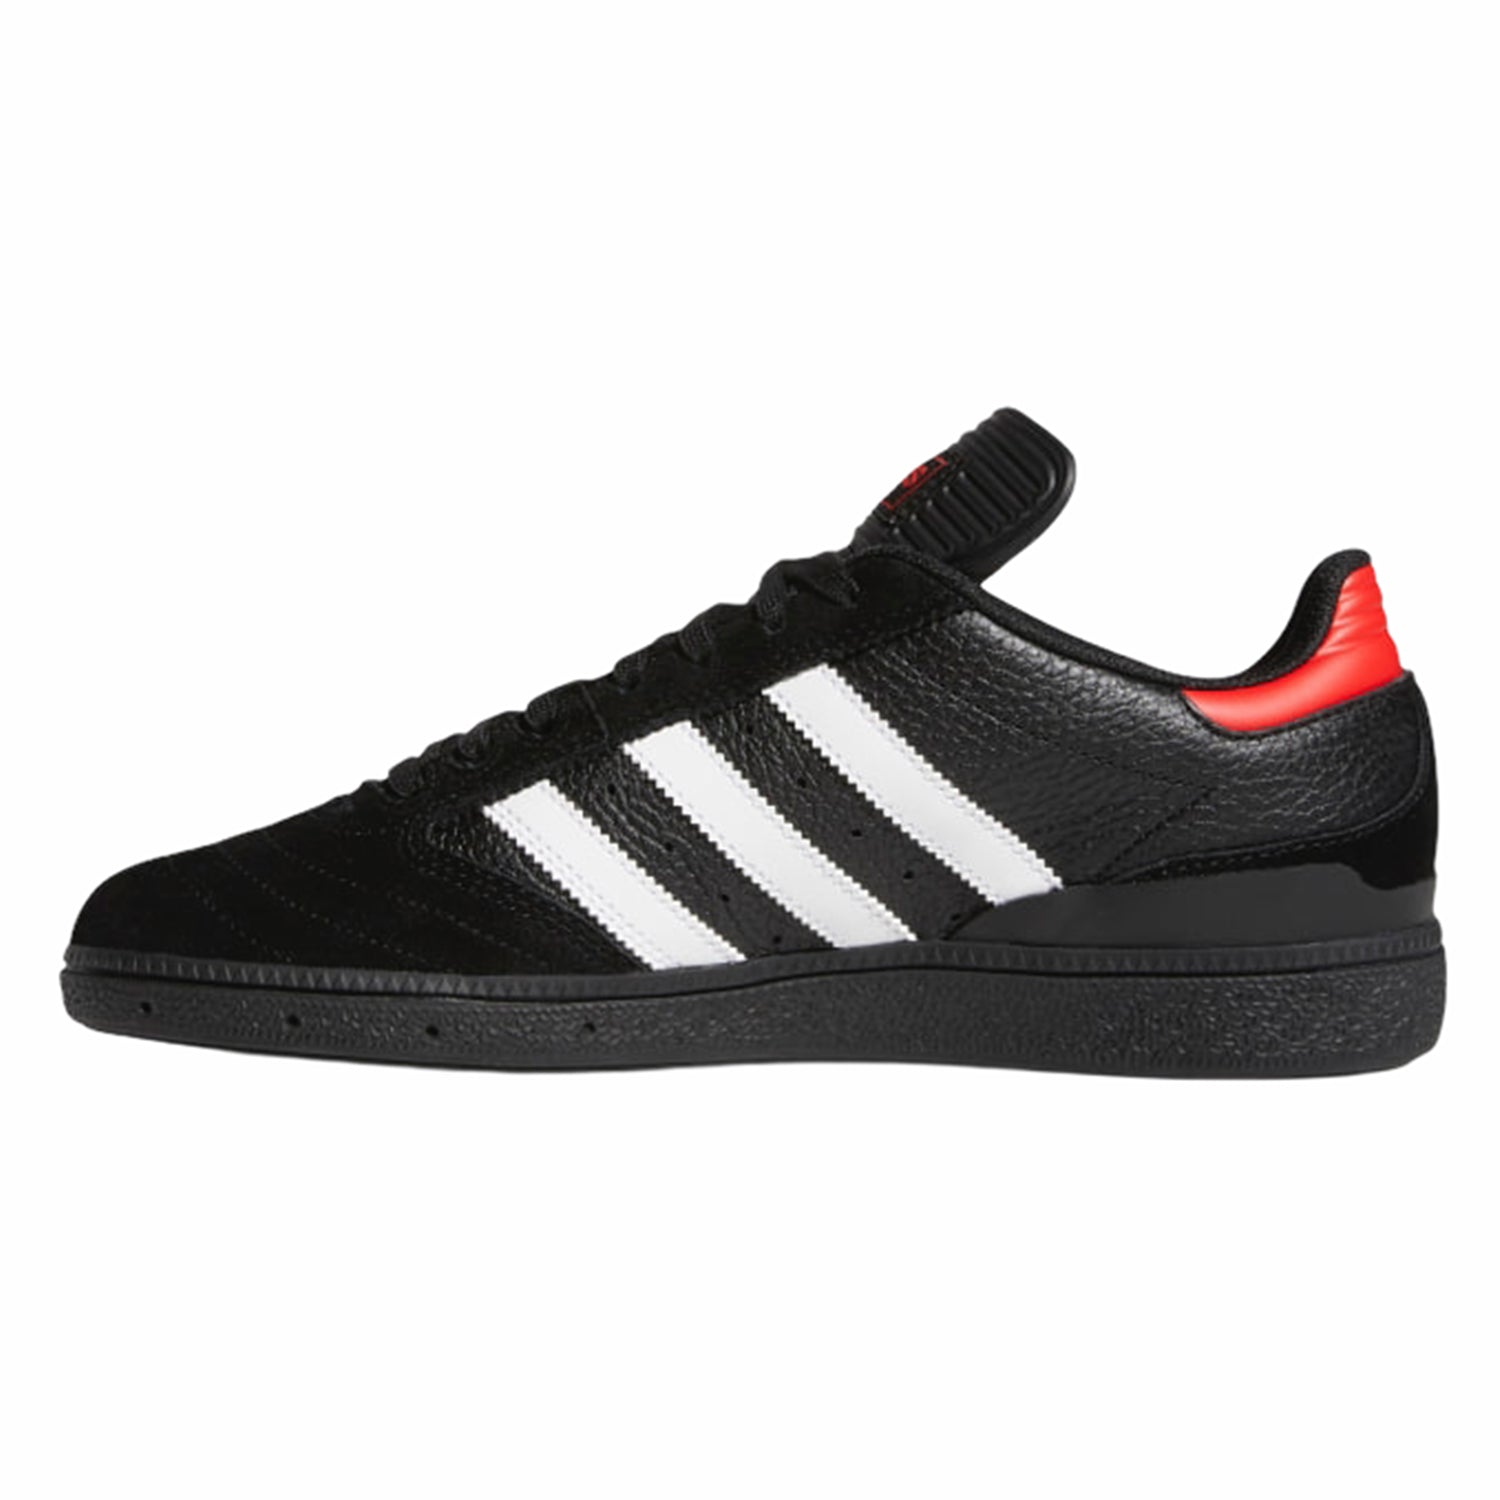 Adidas Busenitz (FY0458) Black/White/Red